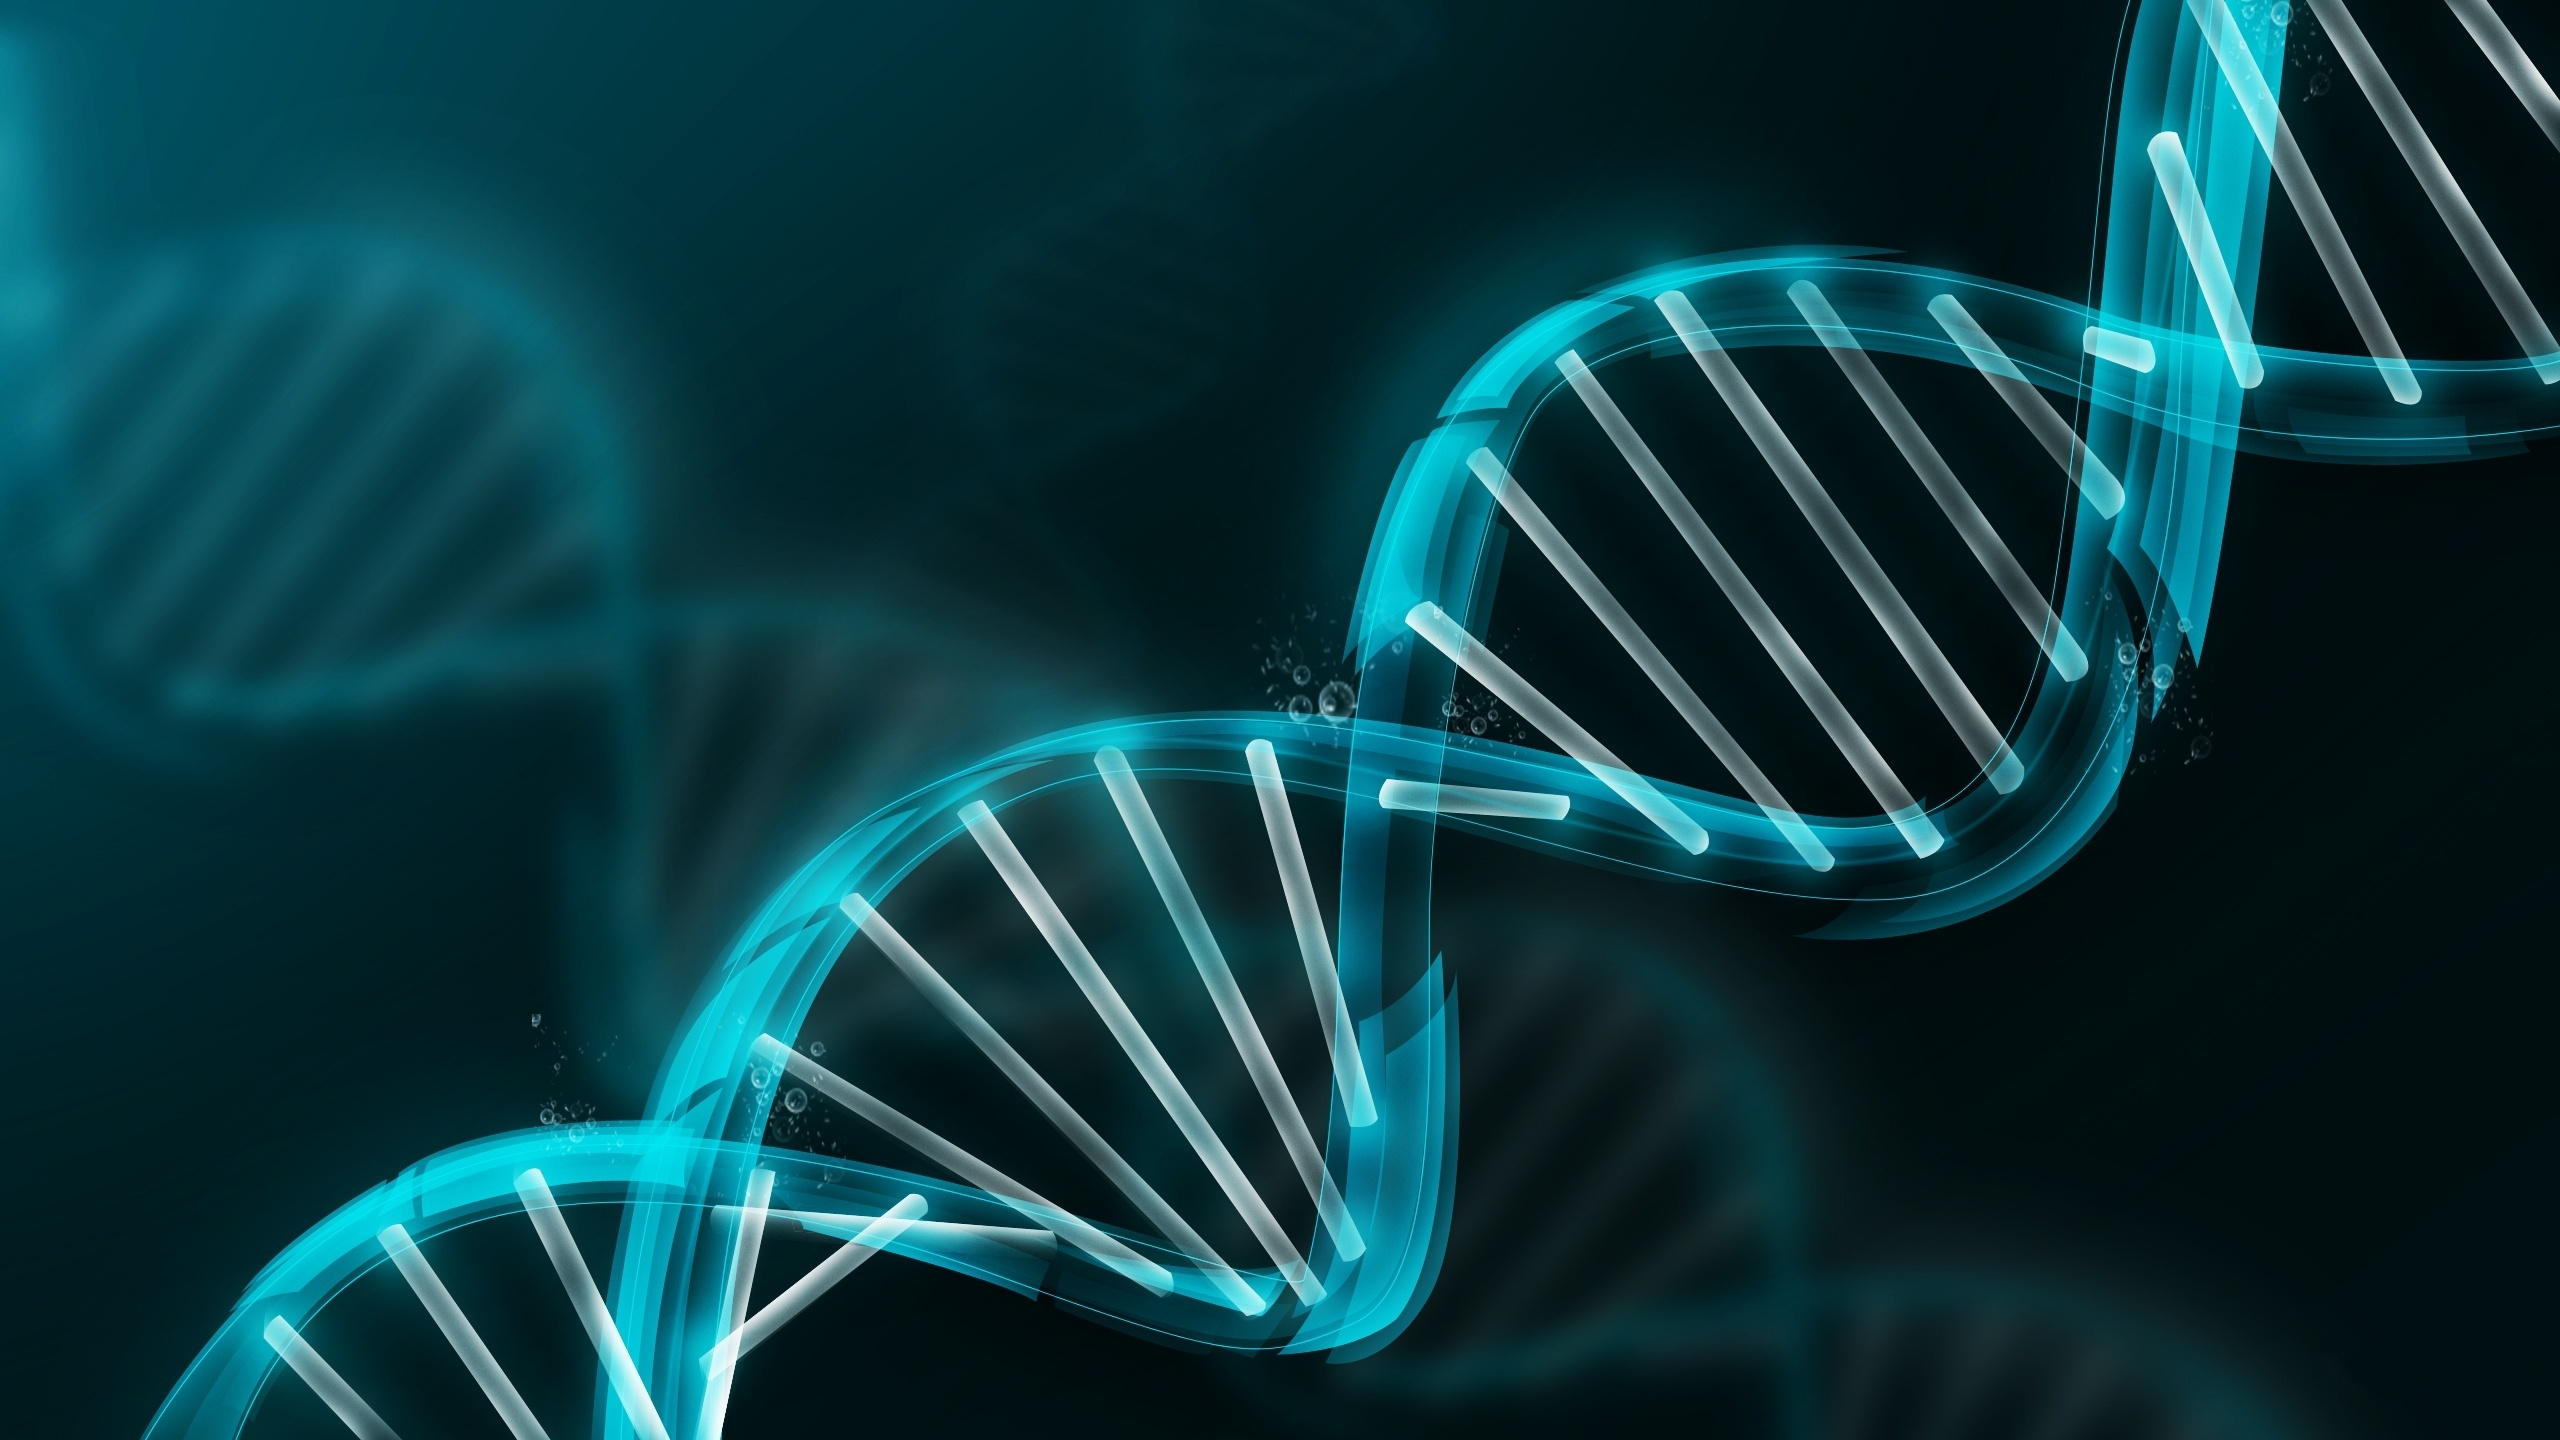 The new treatment aims to strip ones DNA of the HIV virus